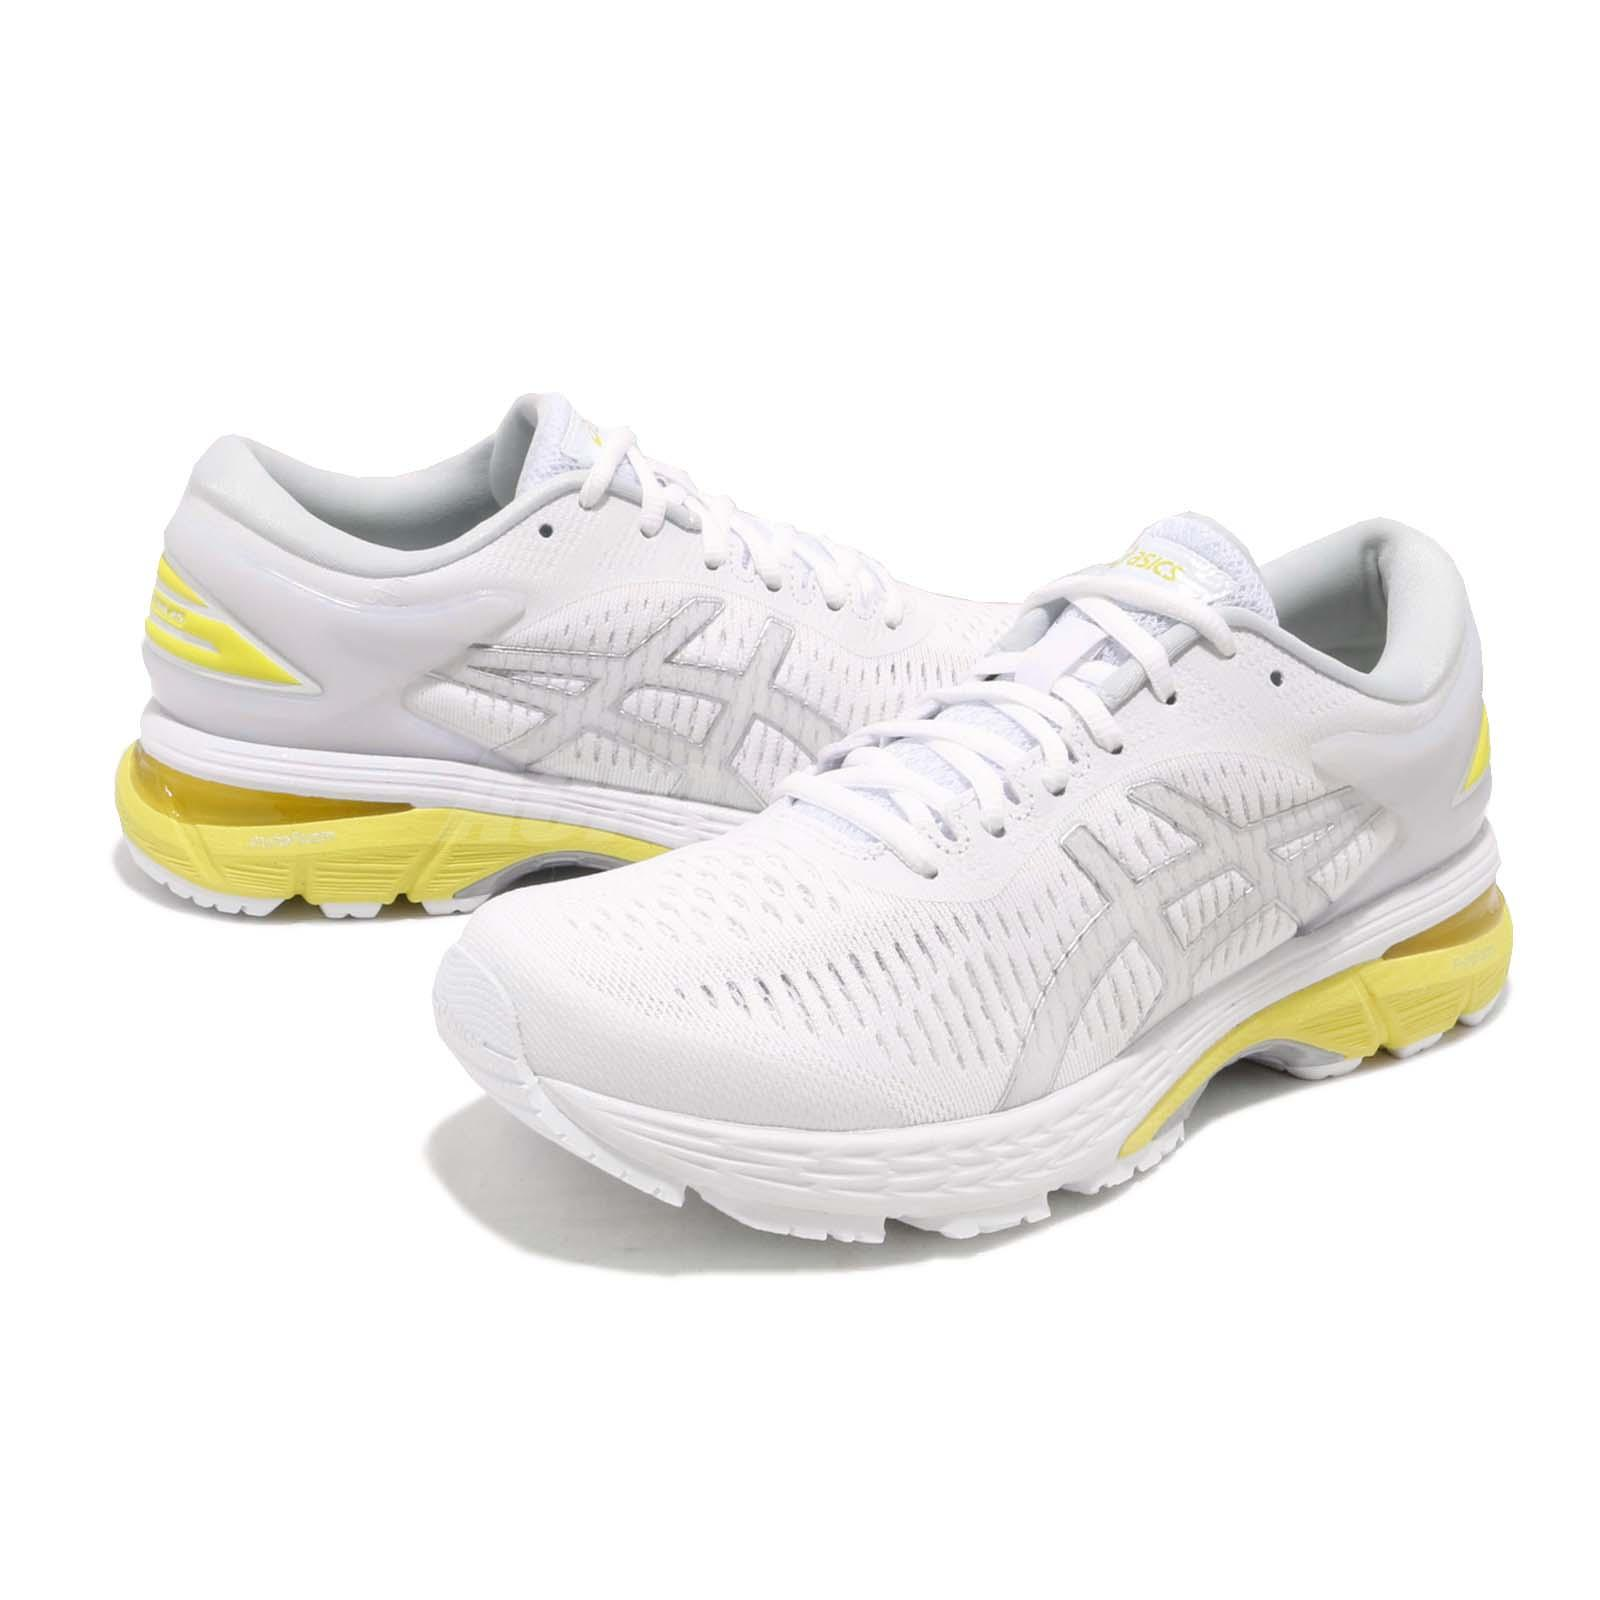 60% discount running shoes promo codes Details about Asics Gel Kayano 25 White Lemon Spark Women Running Shoes  Sneakers 1012A026-101